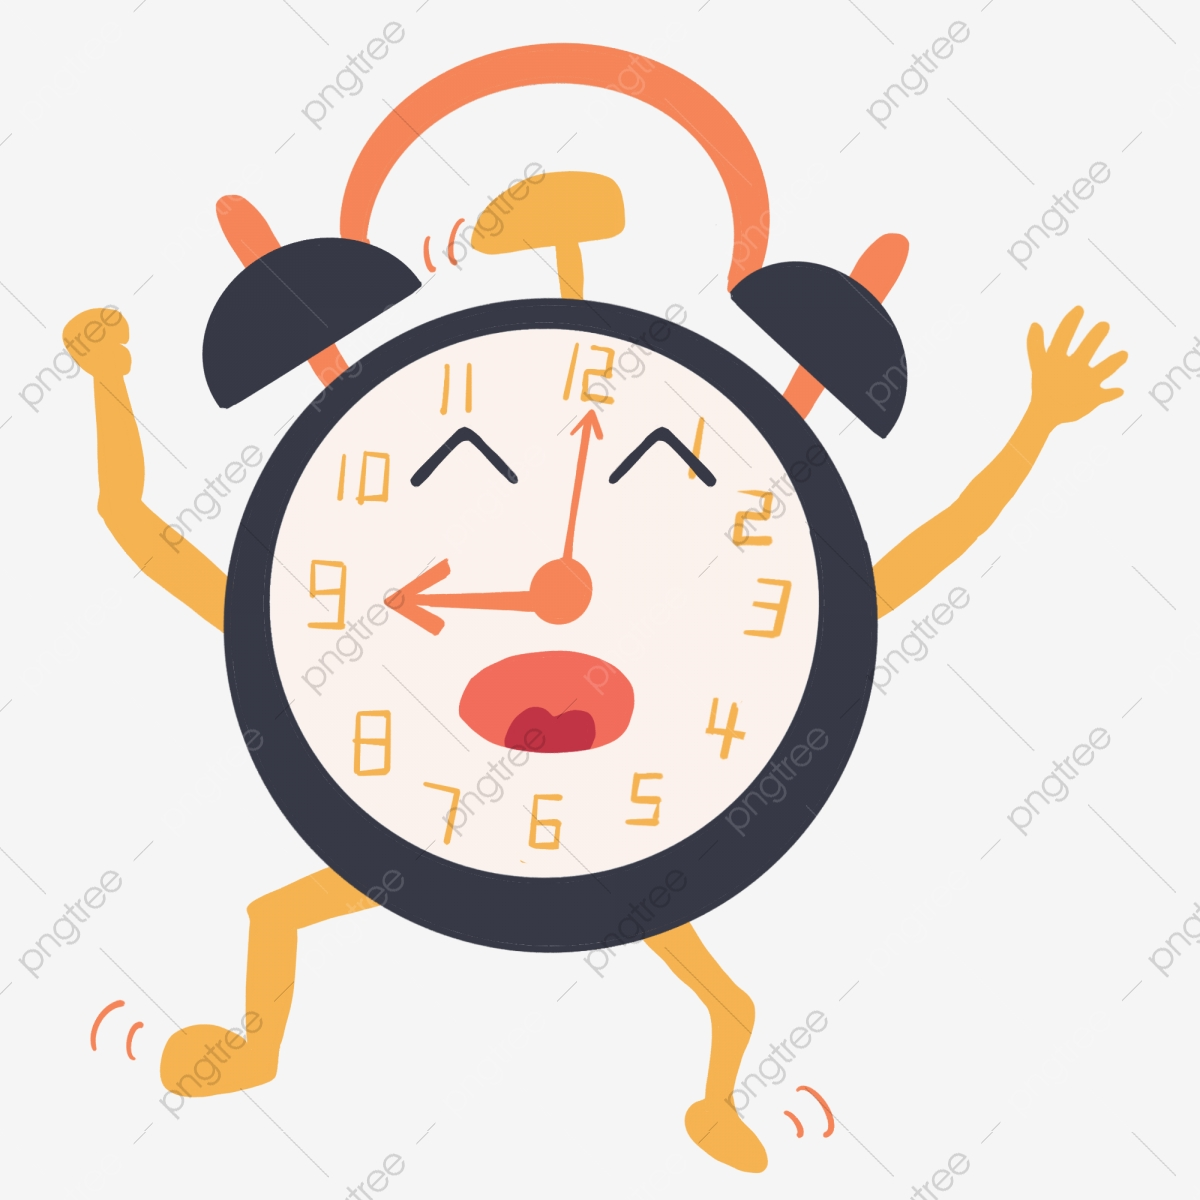 Alarm Clock Ringing Cheerfully Clock Clipart The Alarm Clock Happily Rang The Early Morning The Lovely Alarm Clock Png Transparent Clipart Image And Psd File For Free Download